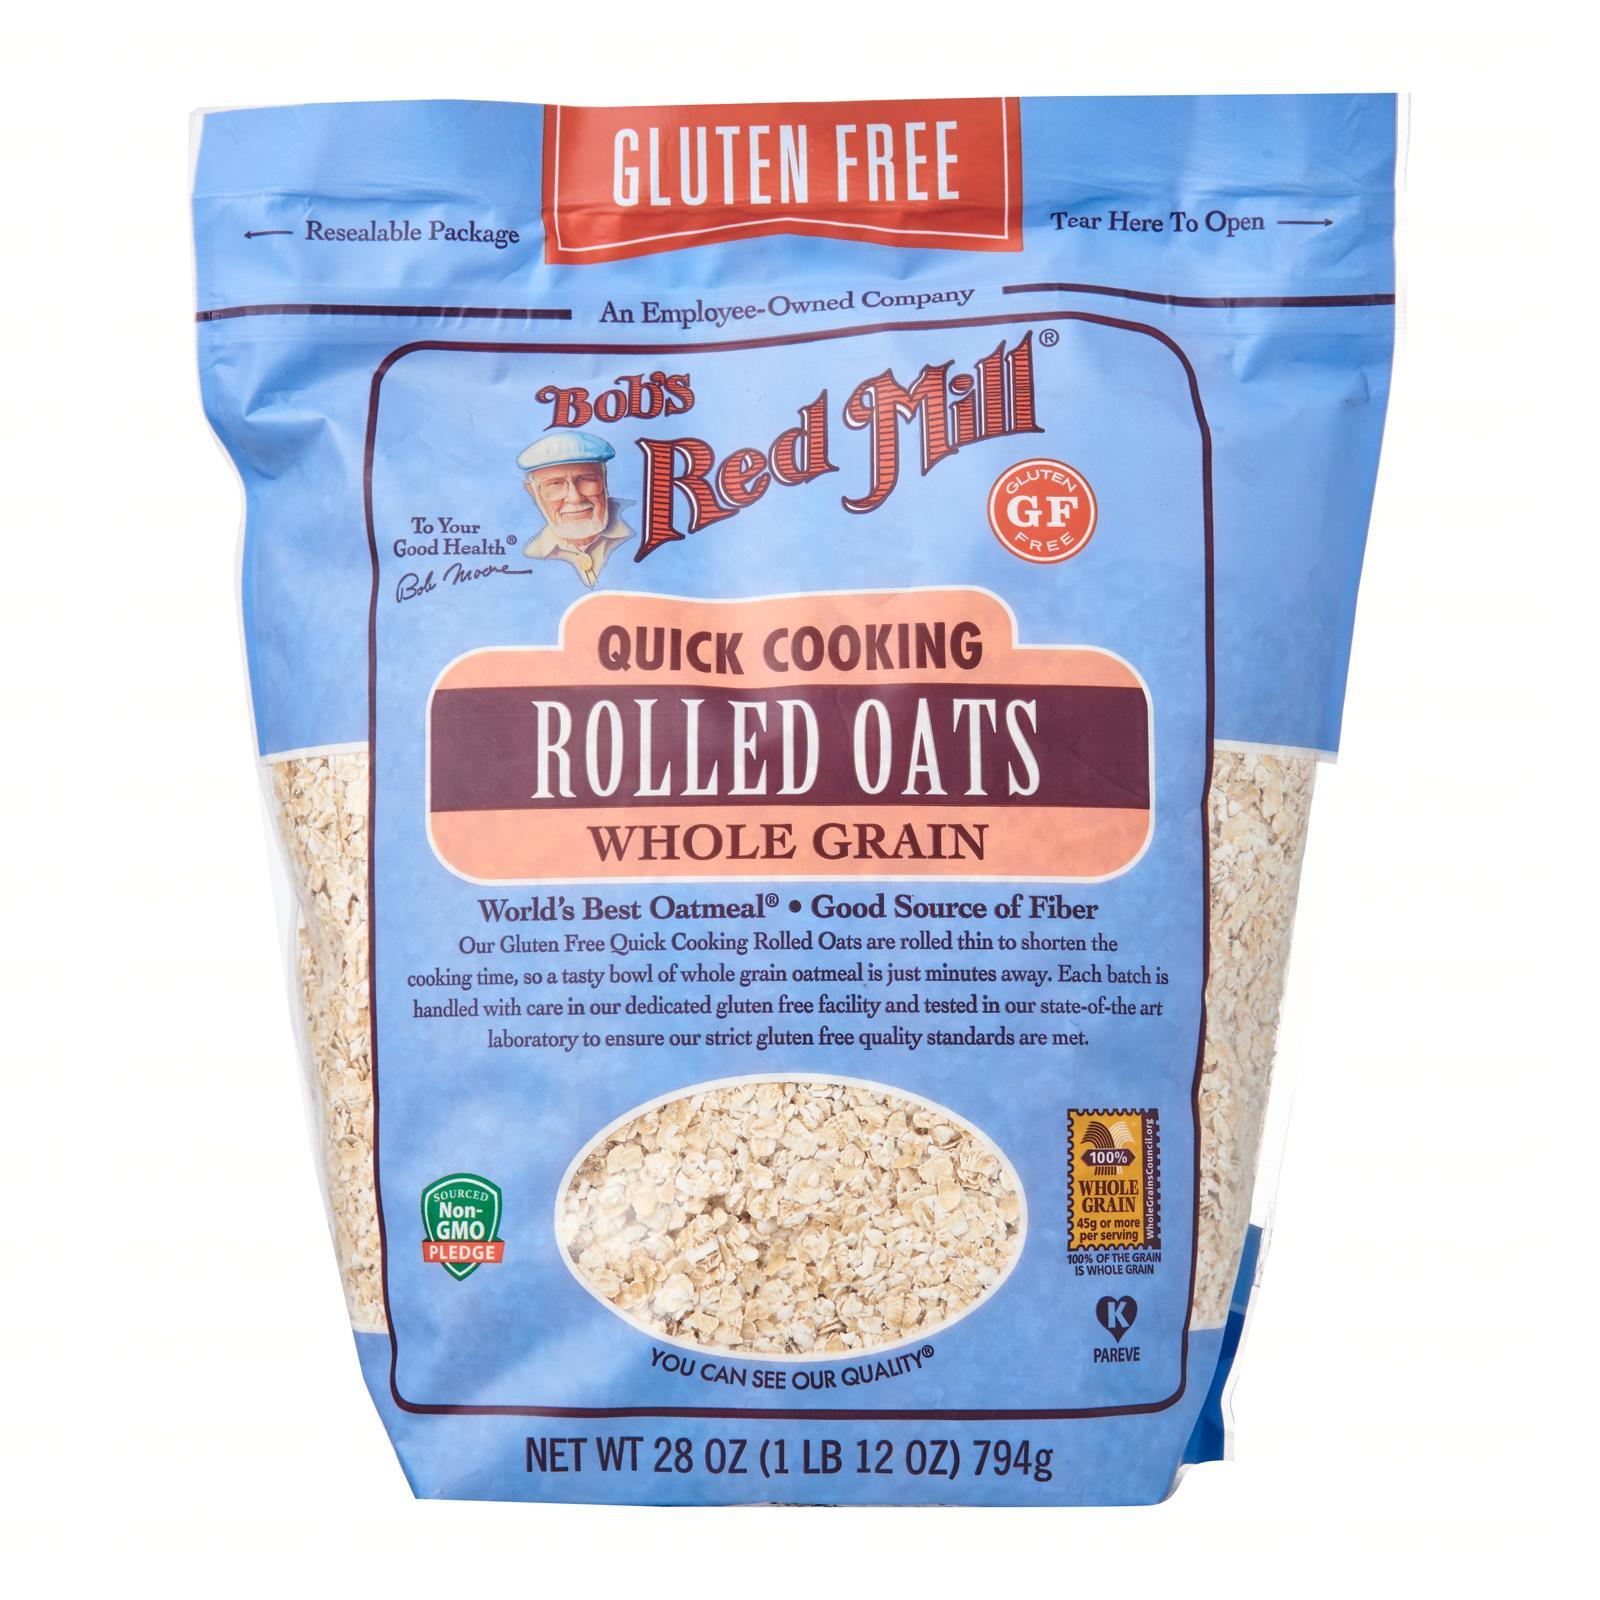 Bob's Red Mill Gluten Free Quick Cooking Rolled Whole Grain Oats